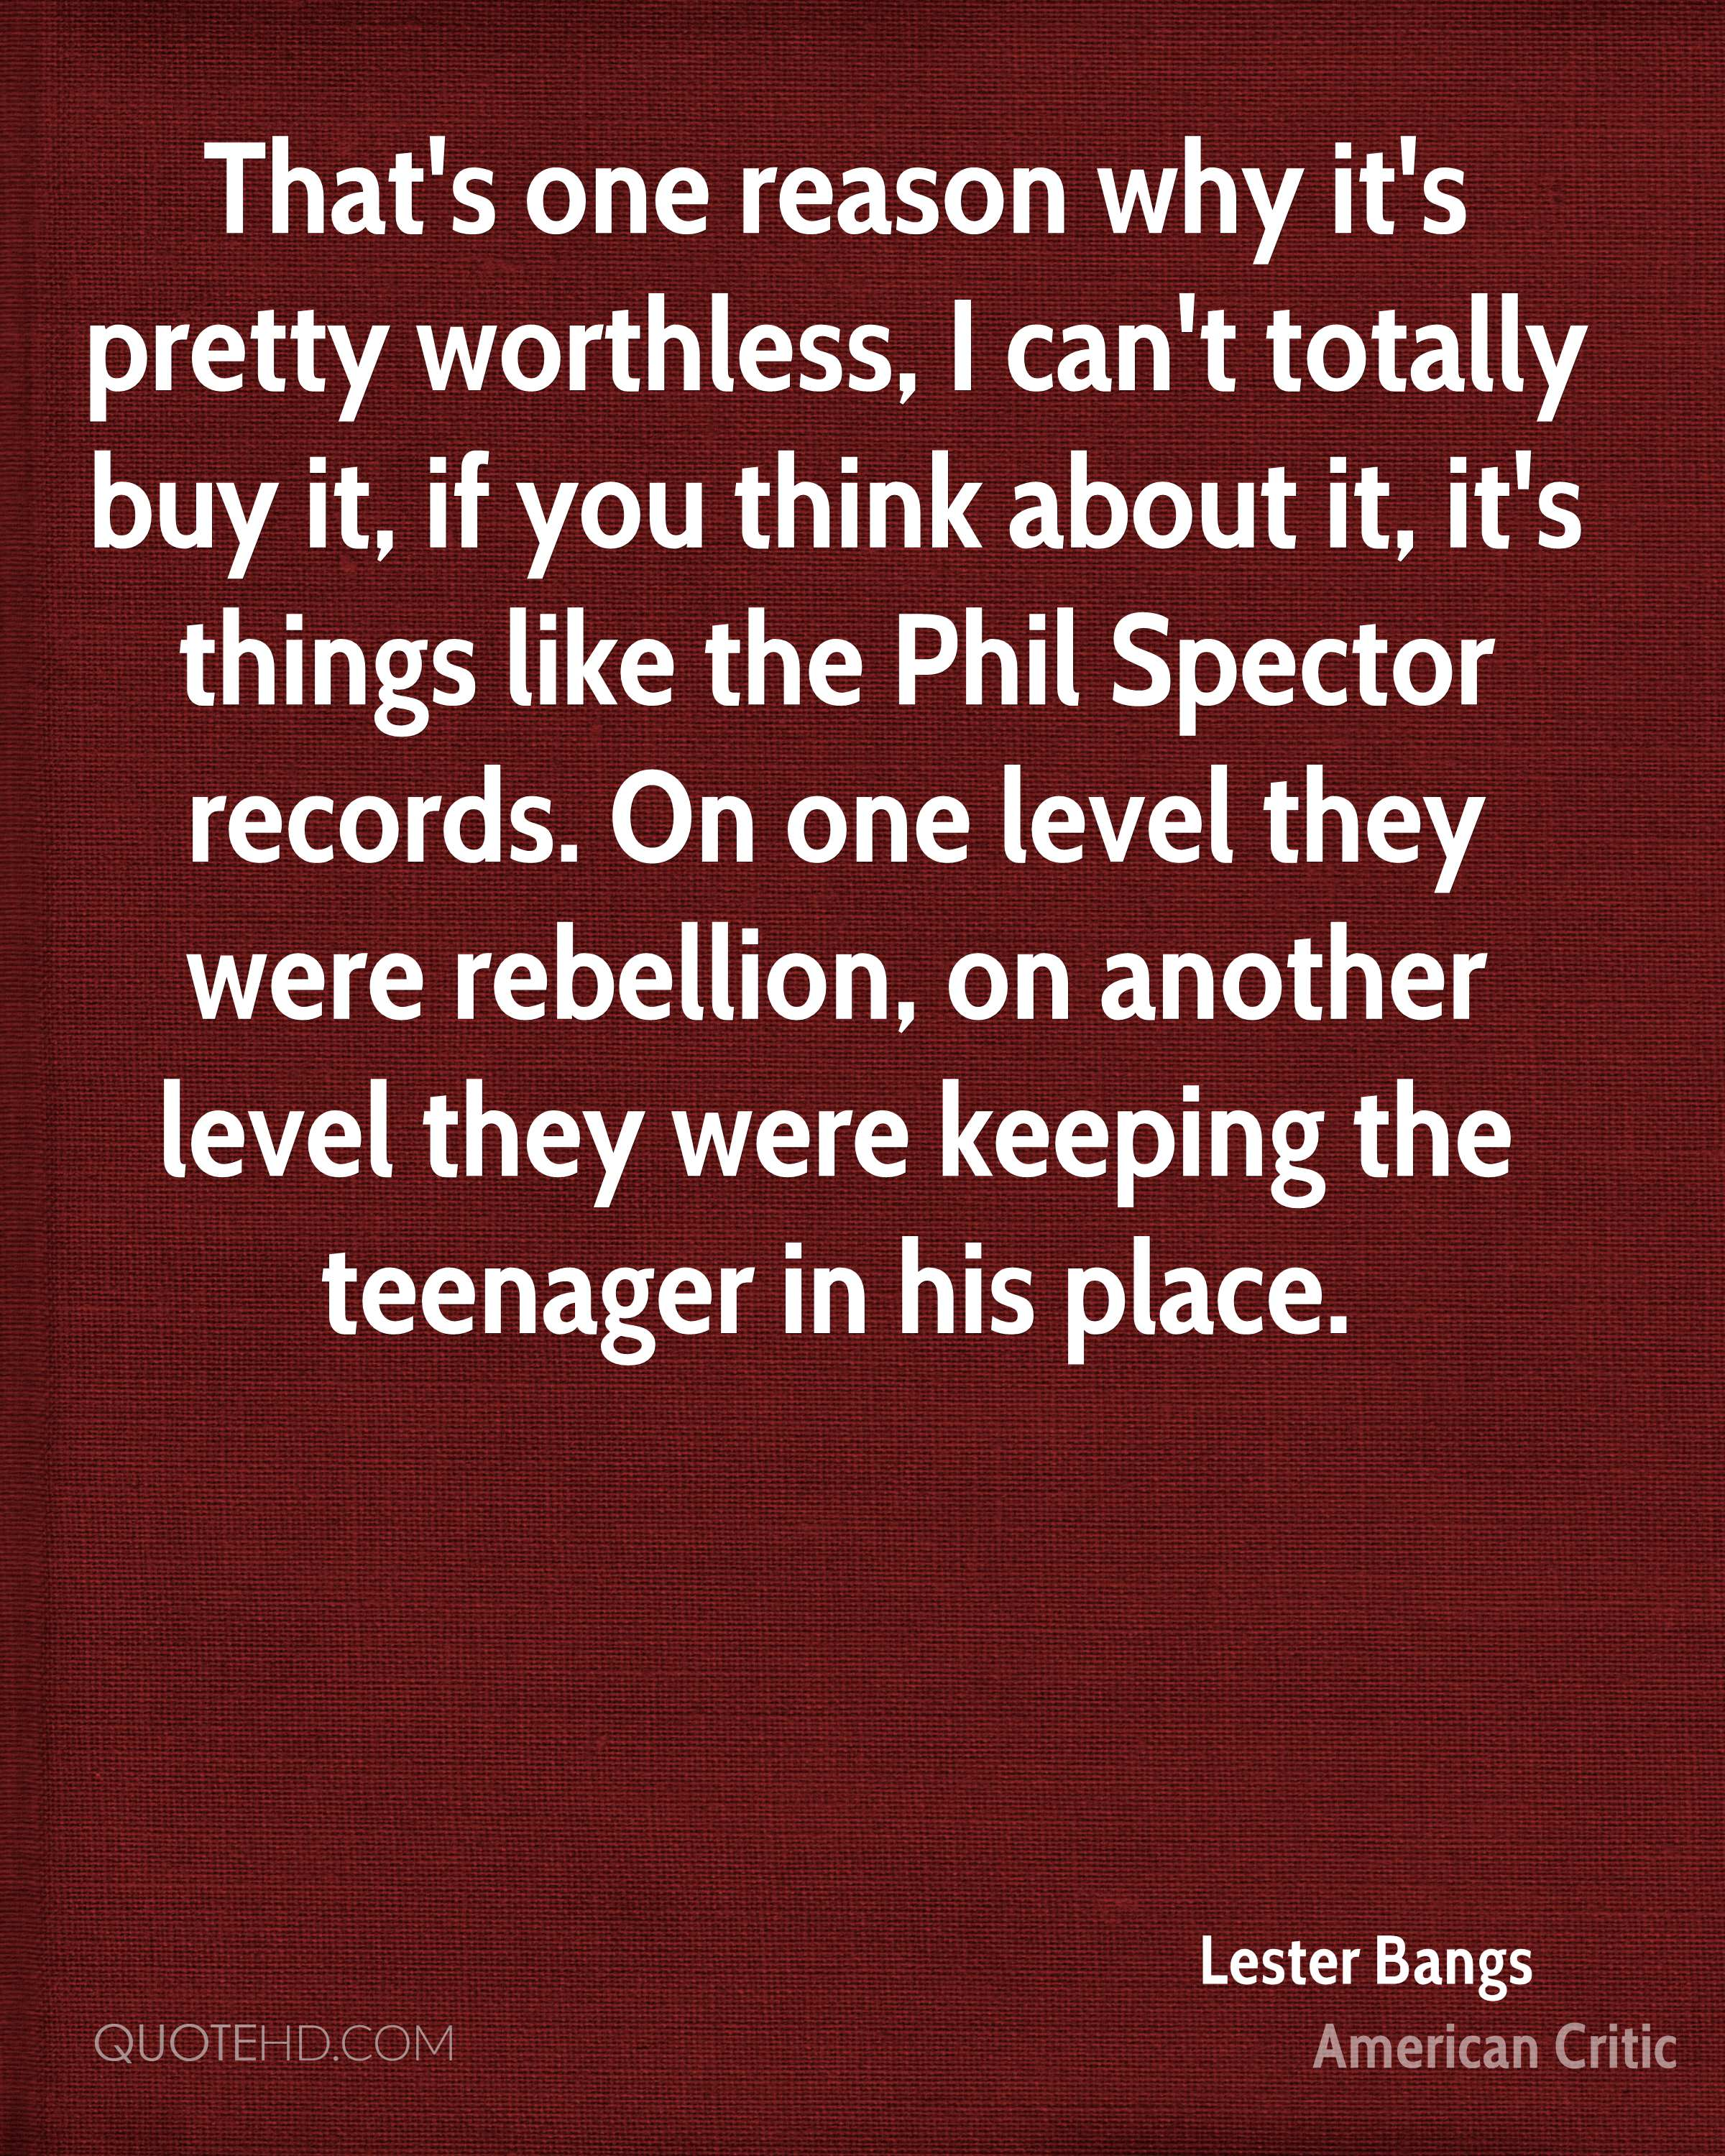 That's one reason why it's pretty worthless, I can't totally buy it, if you think about it, it's things like the Phil Spector records. On one level they were rebellion, on another level they were keeping the teenager in his place.